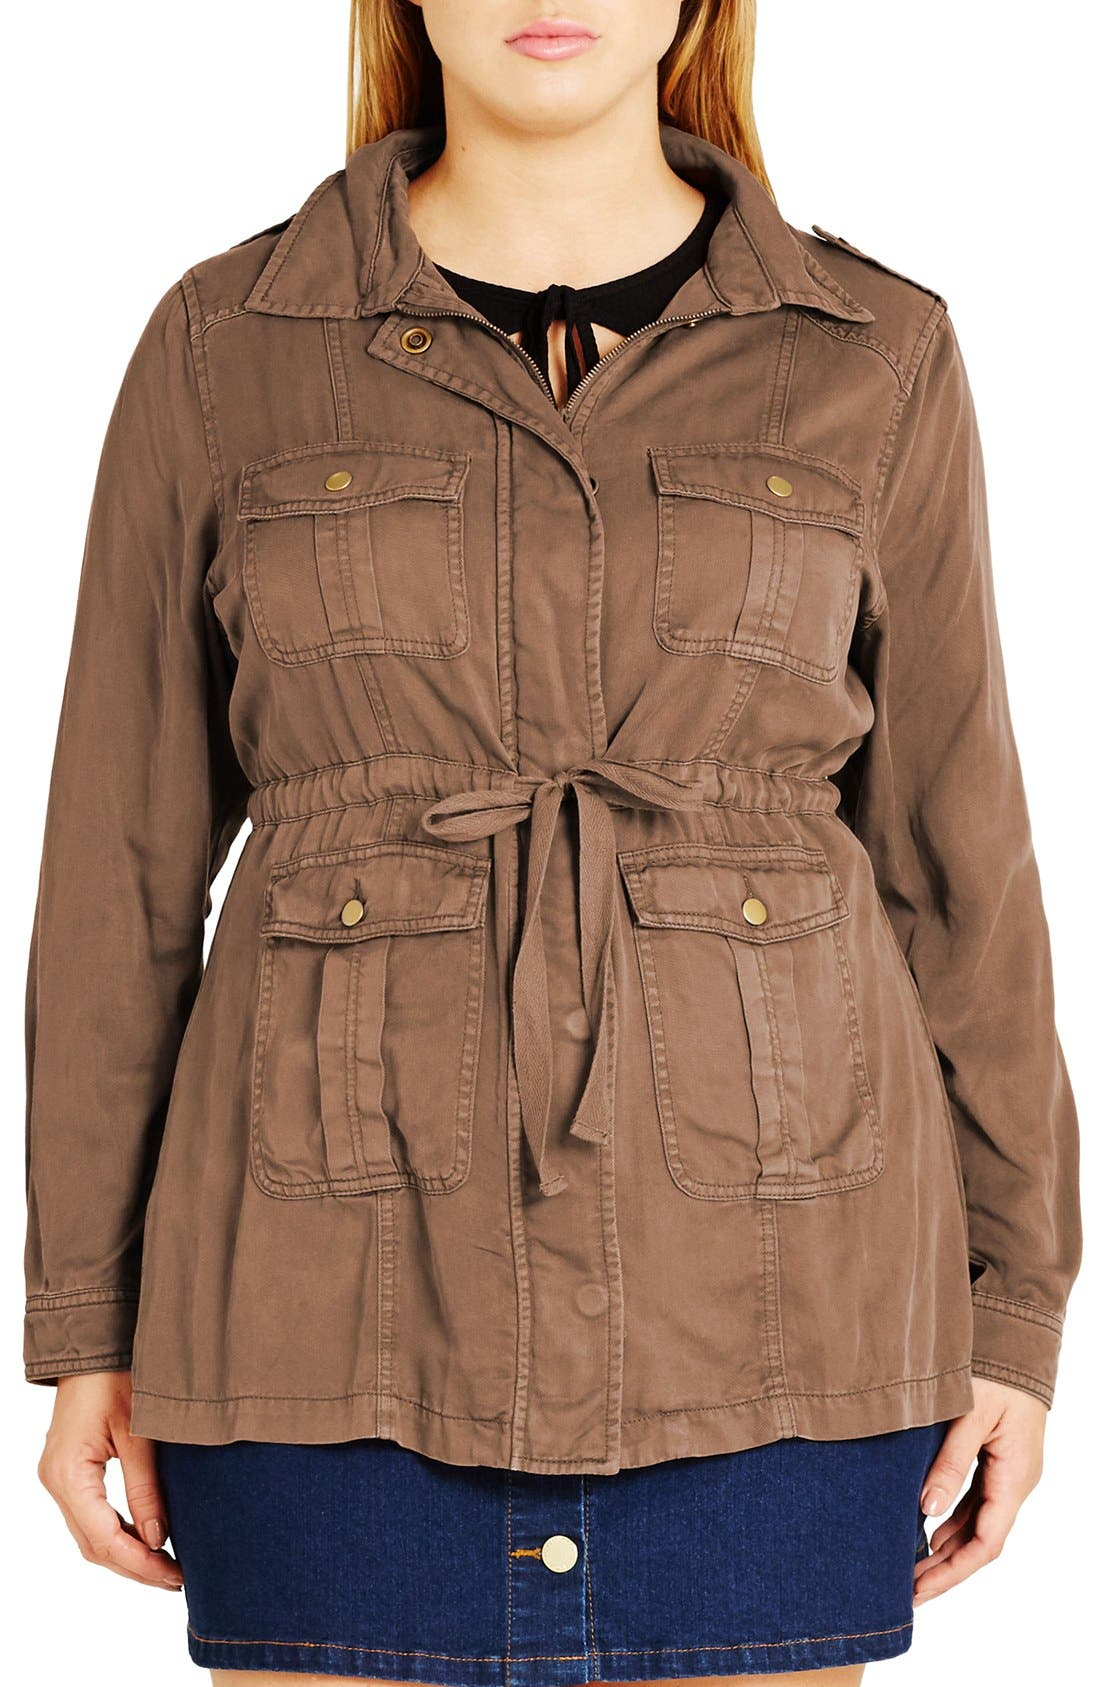 City Chic 'Adventure' Utility Jacket (Plus Size)